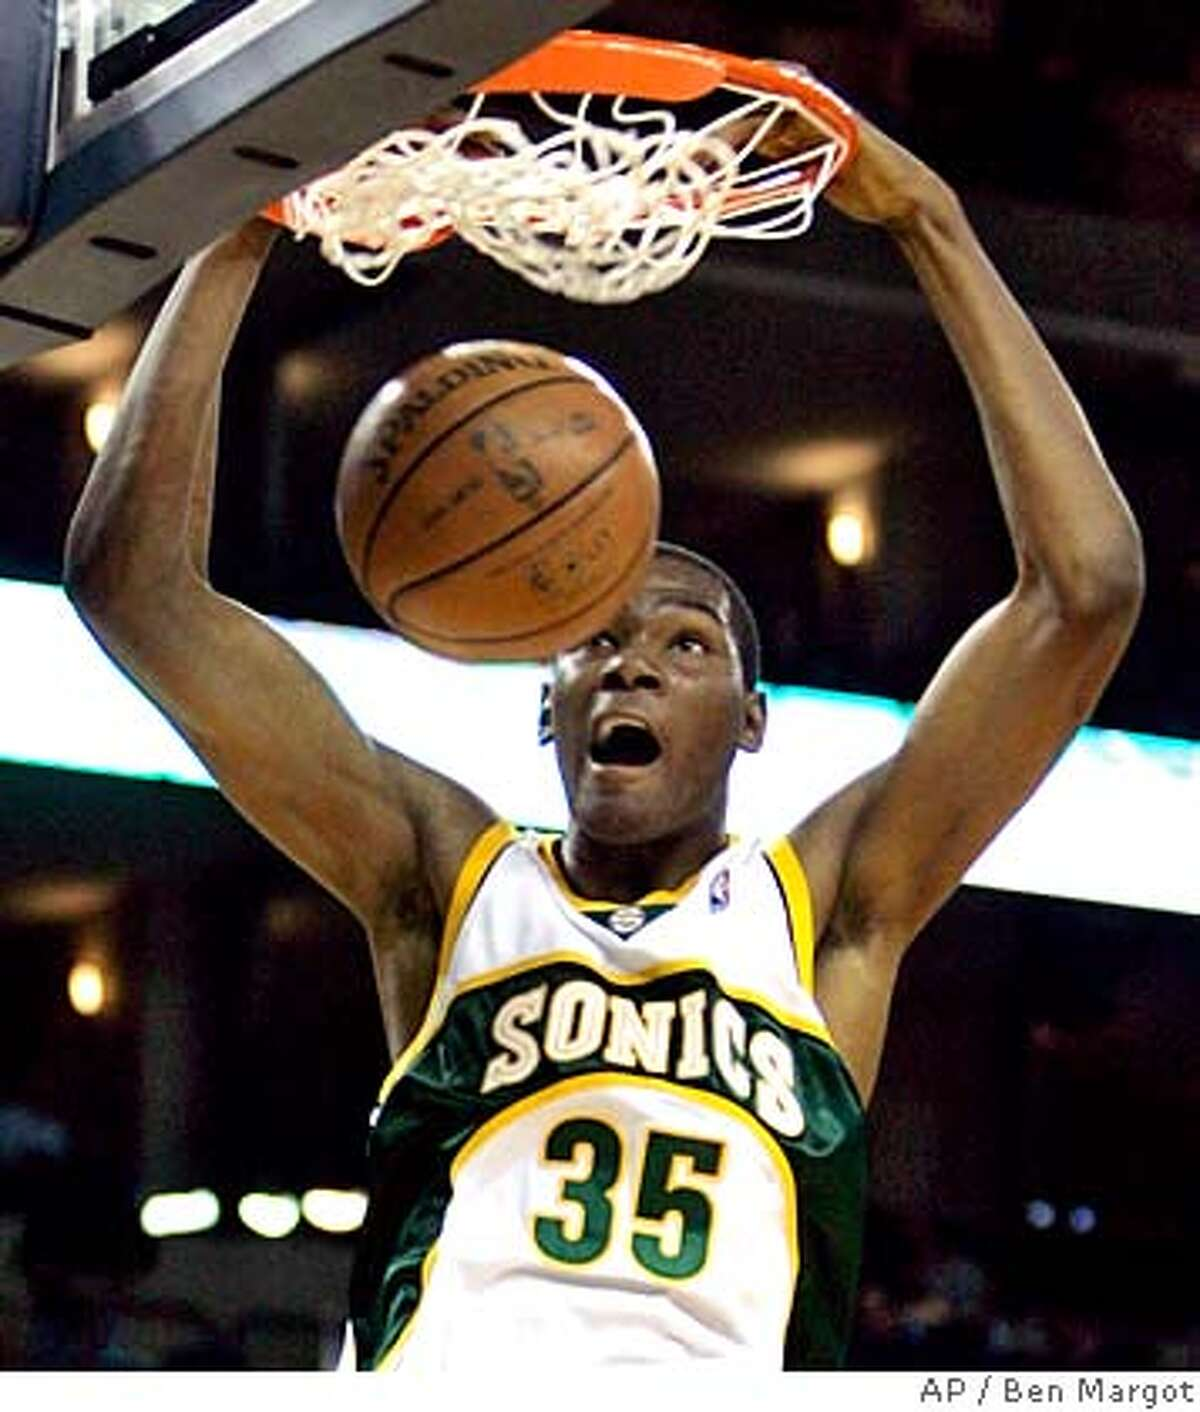 Seattle Supersonics' Kevin Durant dunks against the Golden State Warriors during the first half of an NBA basketball game Tuesday, Feb. 26, 2008, in Oakland, Calif. (AP Photo/Ben Margot)